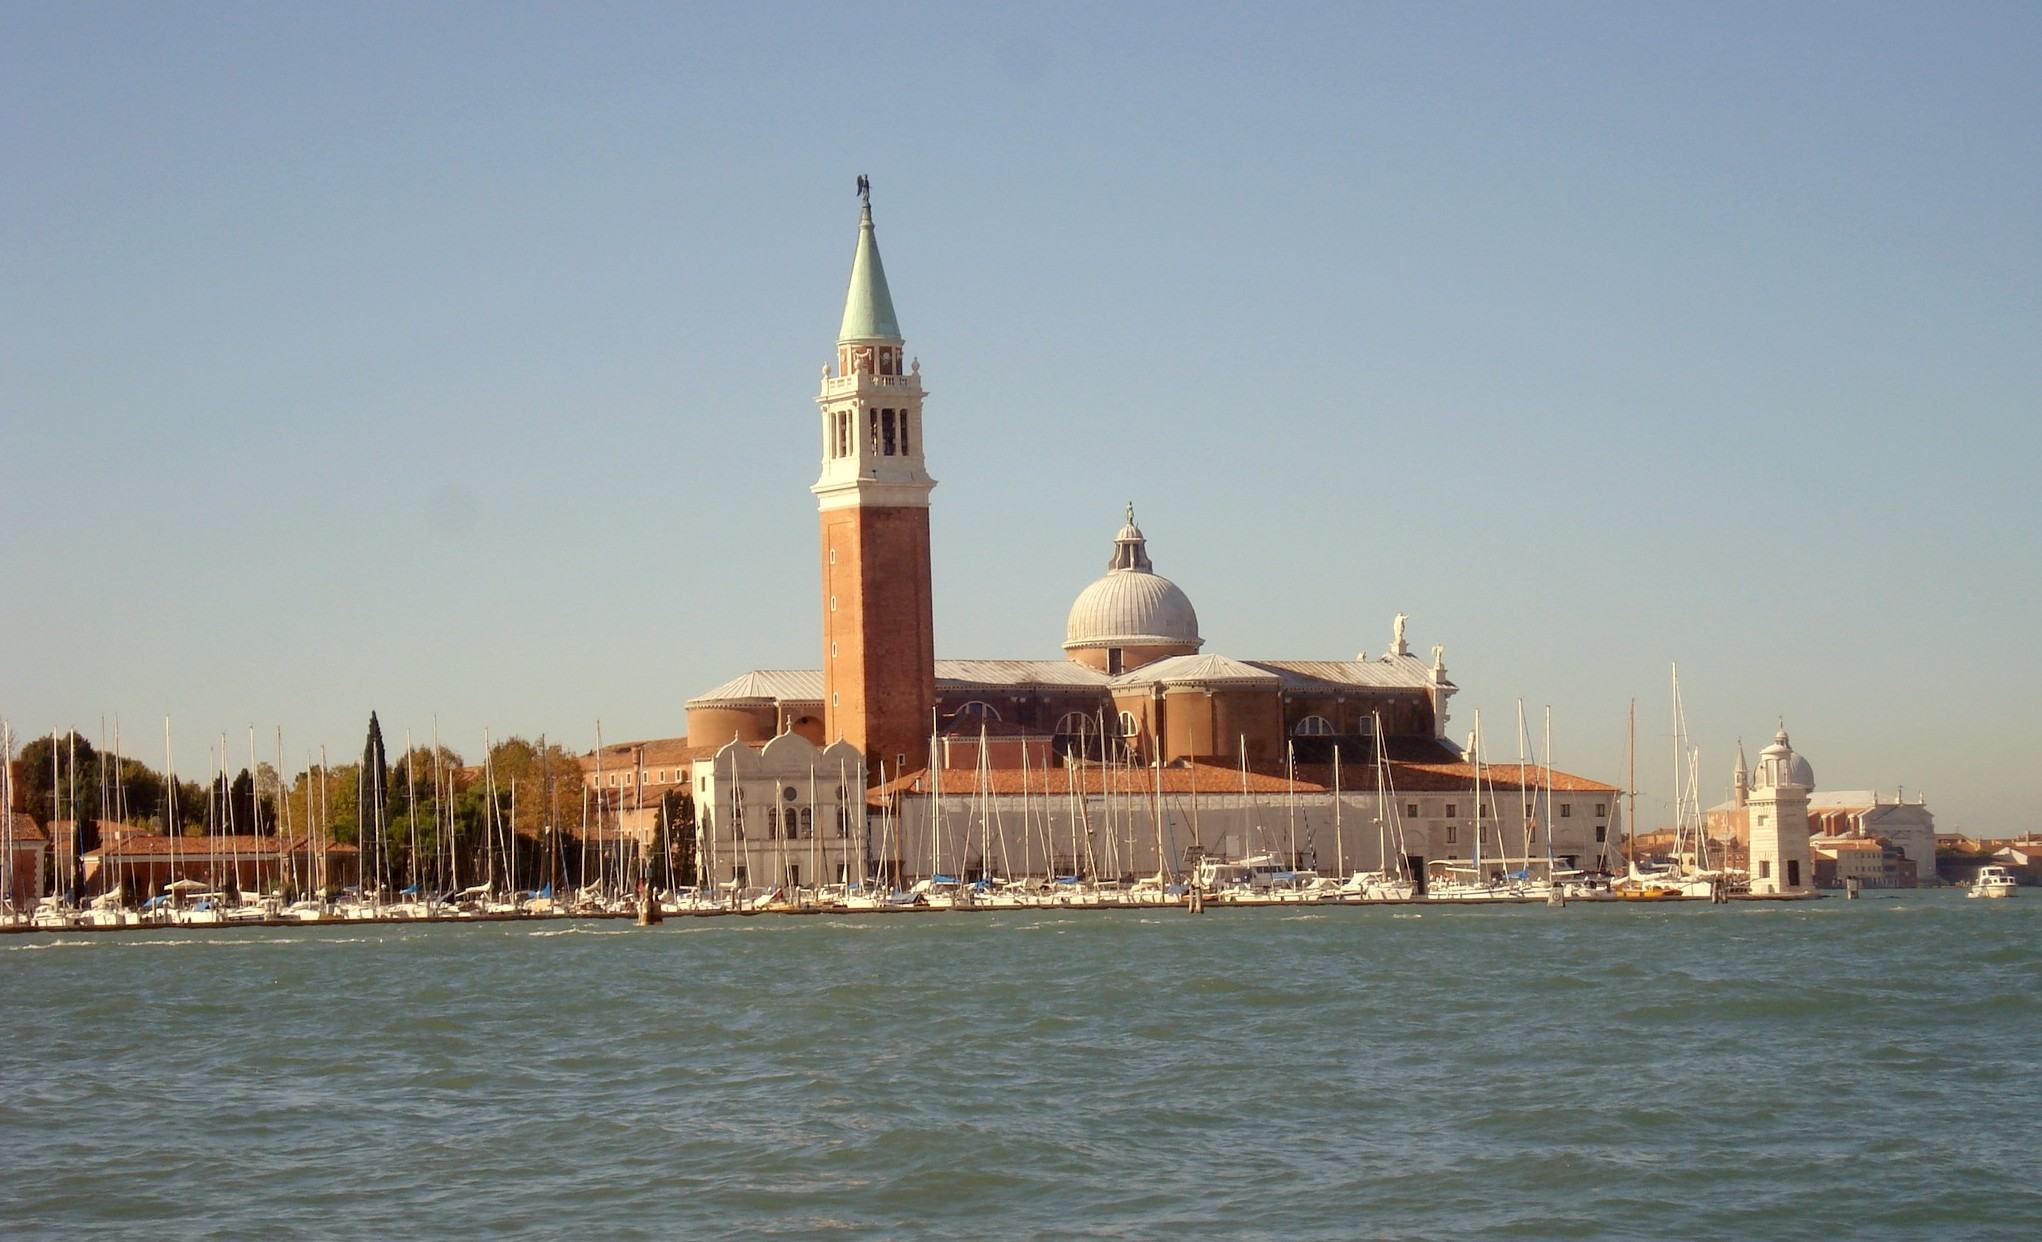 13+ things to see in Venice, Italy. ouritalianjourney.com